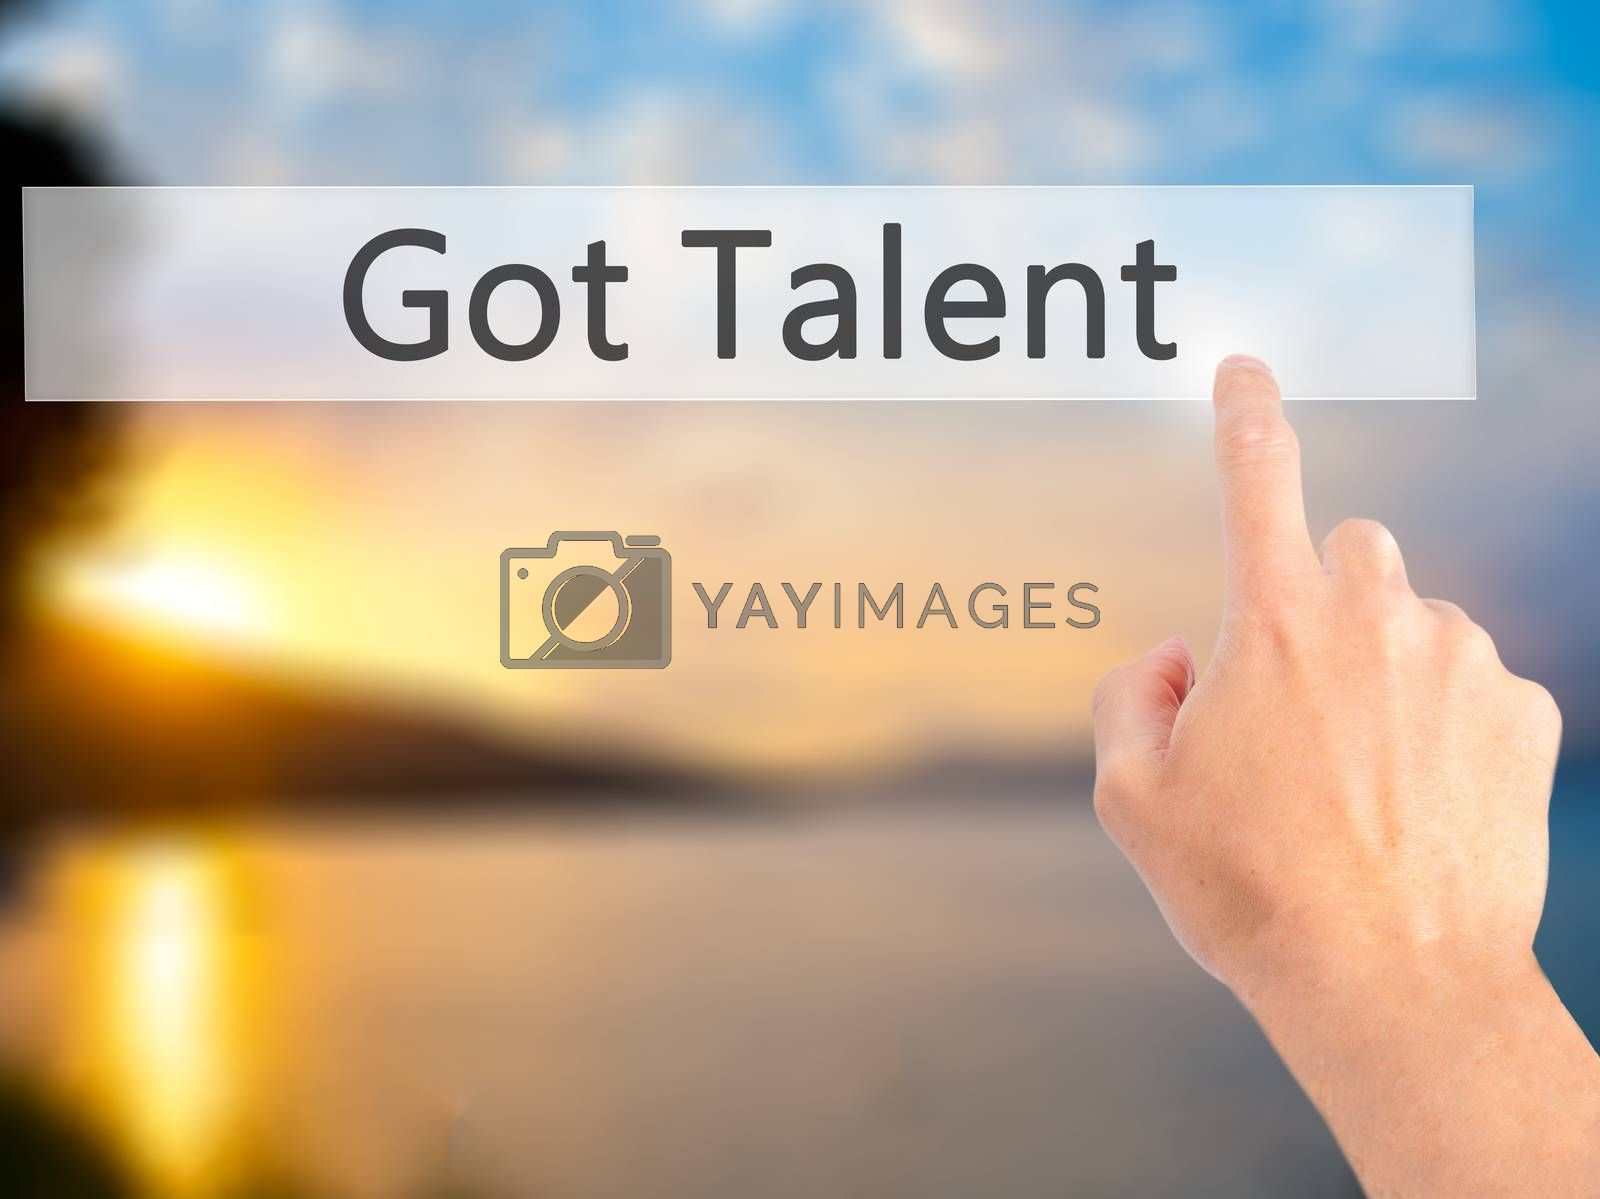 Got Talent - Hand pressing a button on blurred background concep by jackald